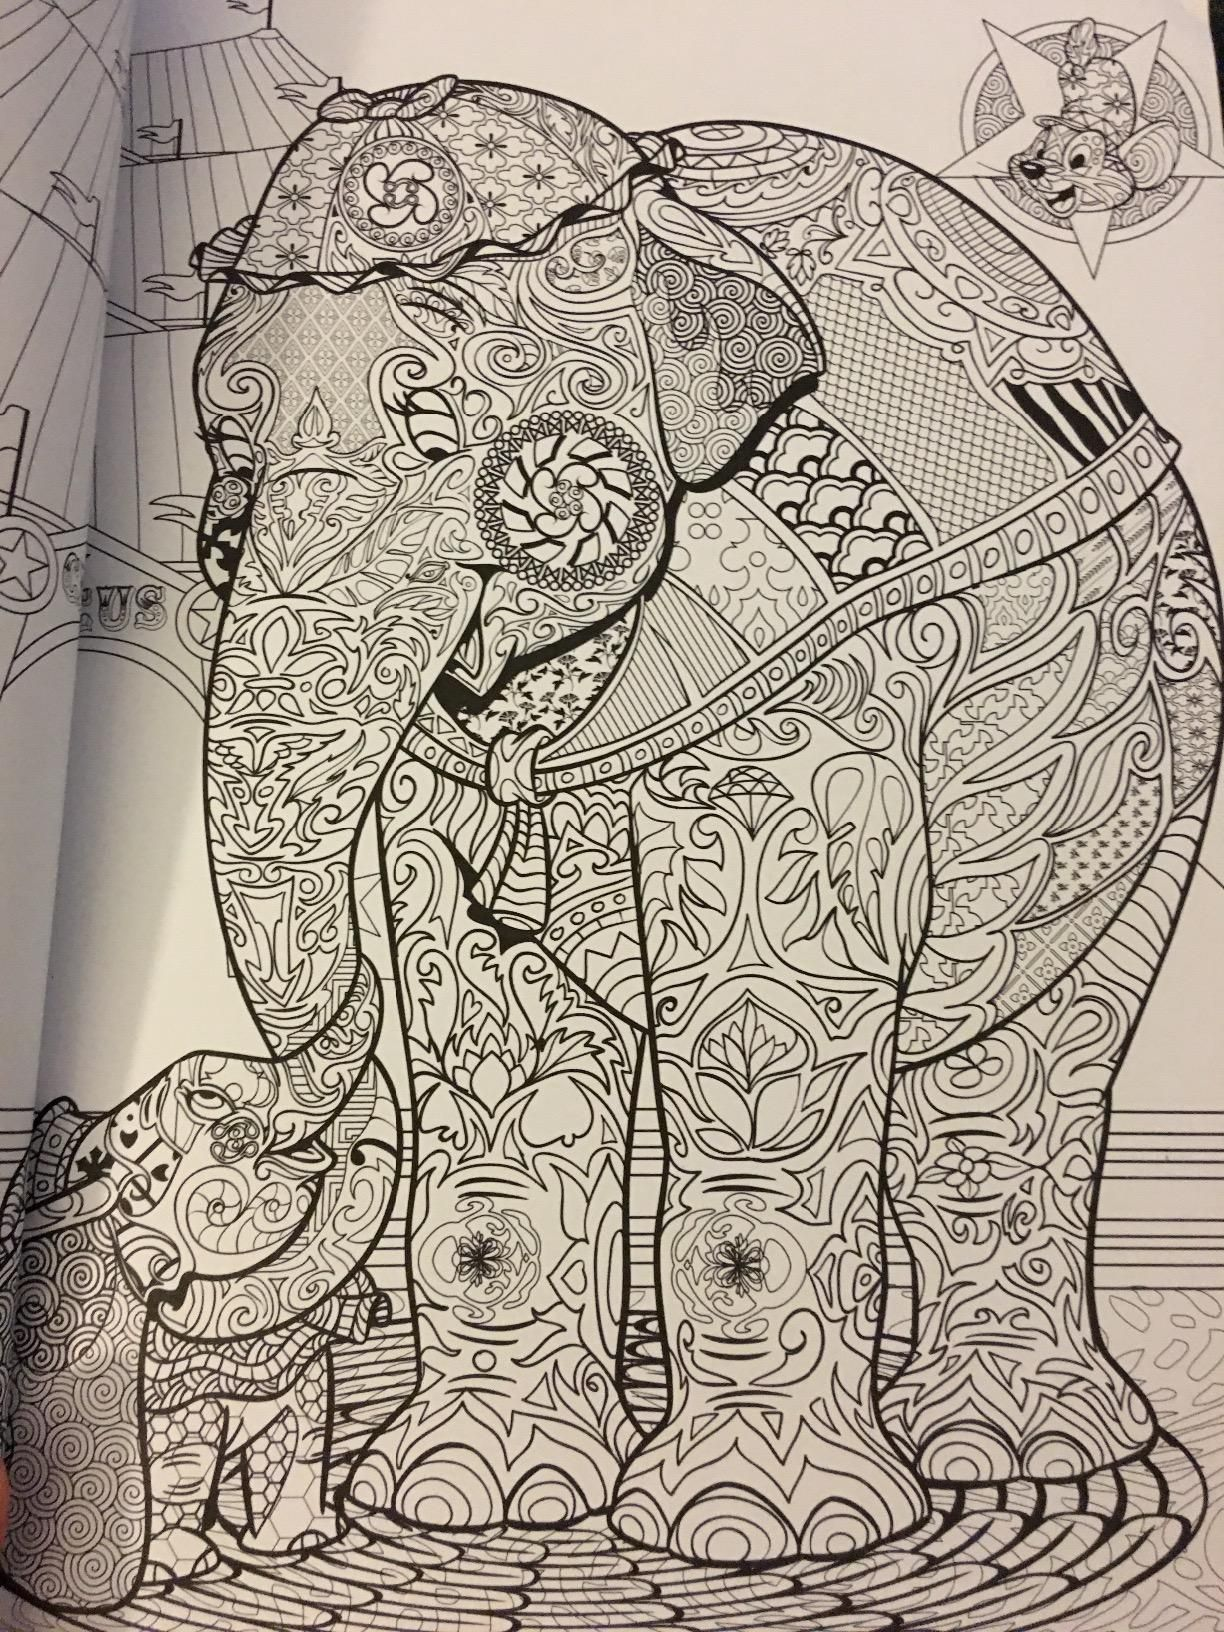 Amazon Art Of Coloring Disney Animals 100 Images To Inspire Creativity BookCreativity